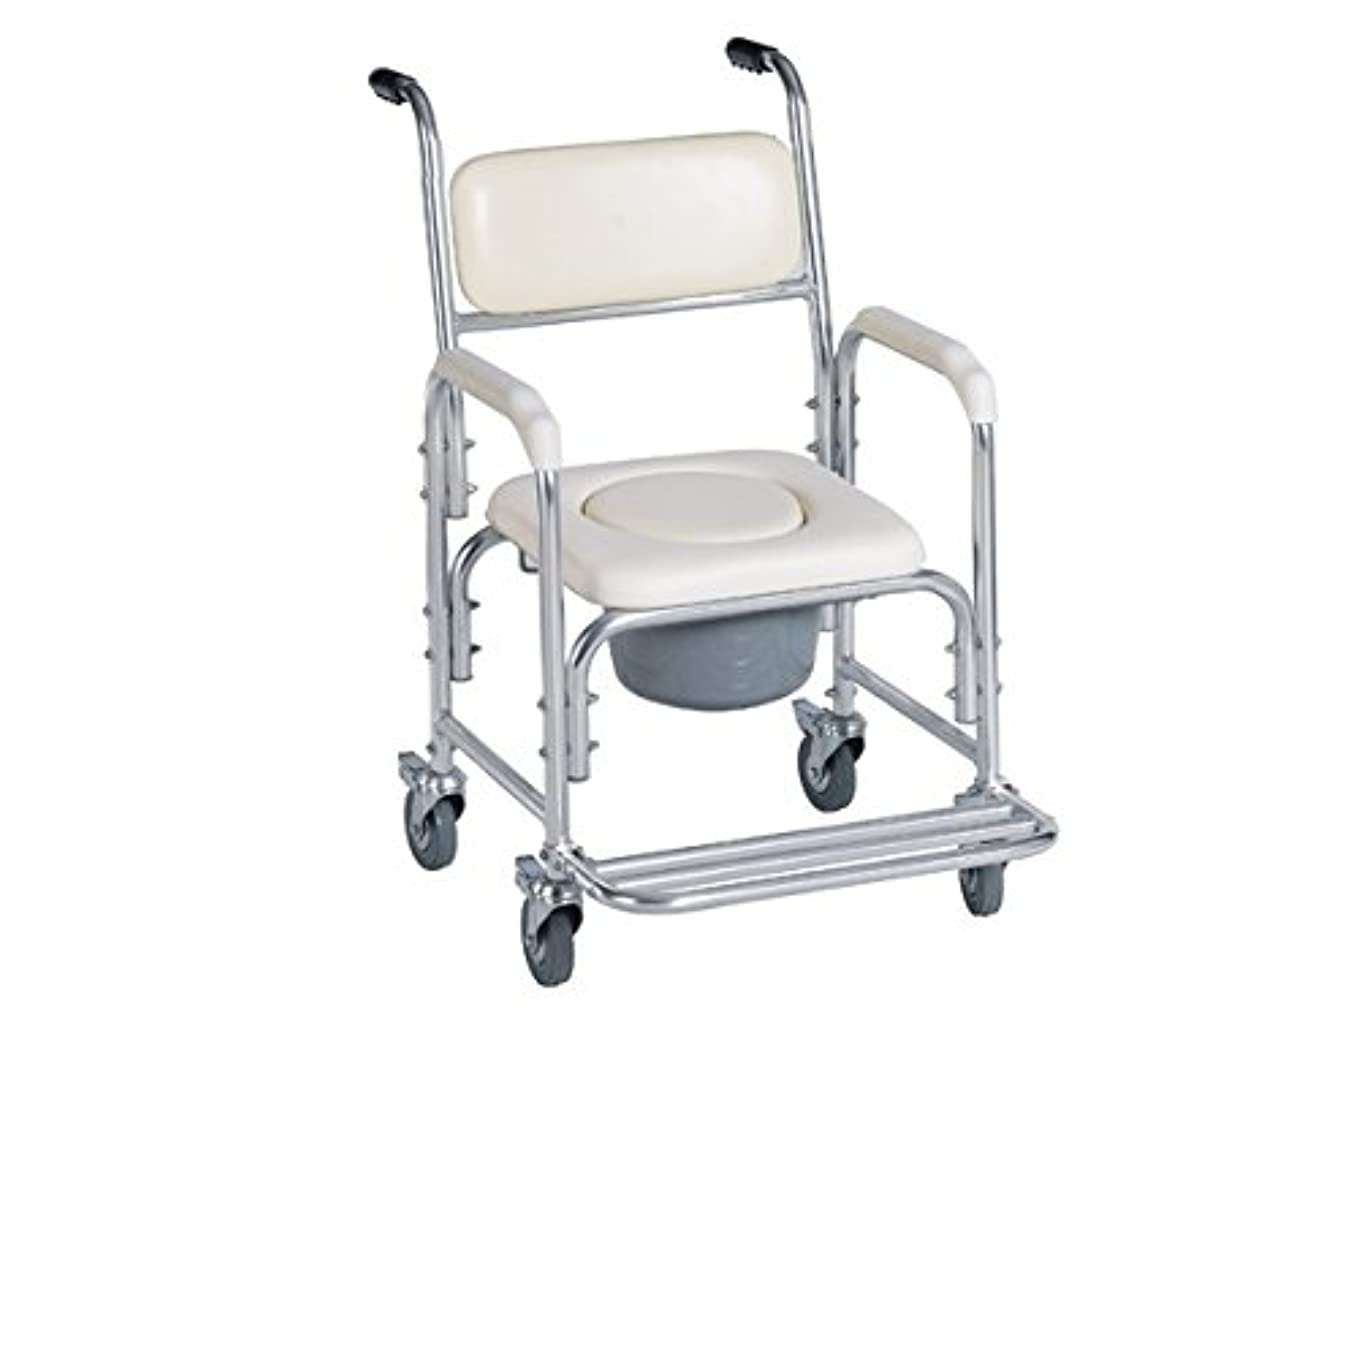 Aluminum Shower Chair/Bedside Commode W/casters and Padded Seat, Commode Pail and Cover by Healthline Trading